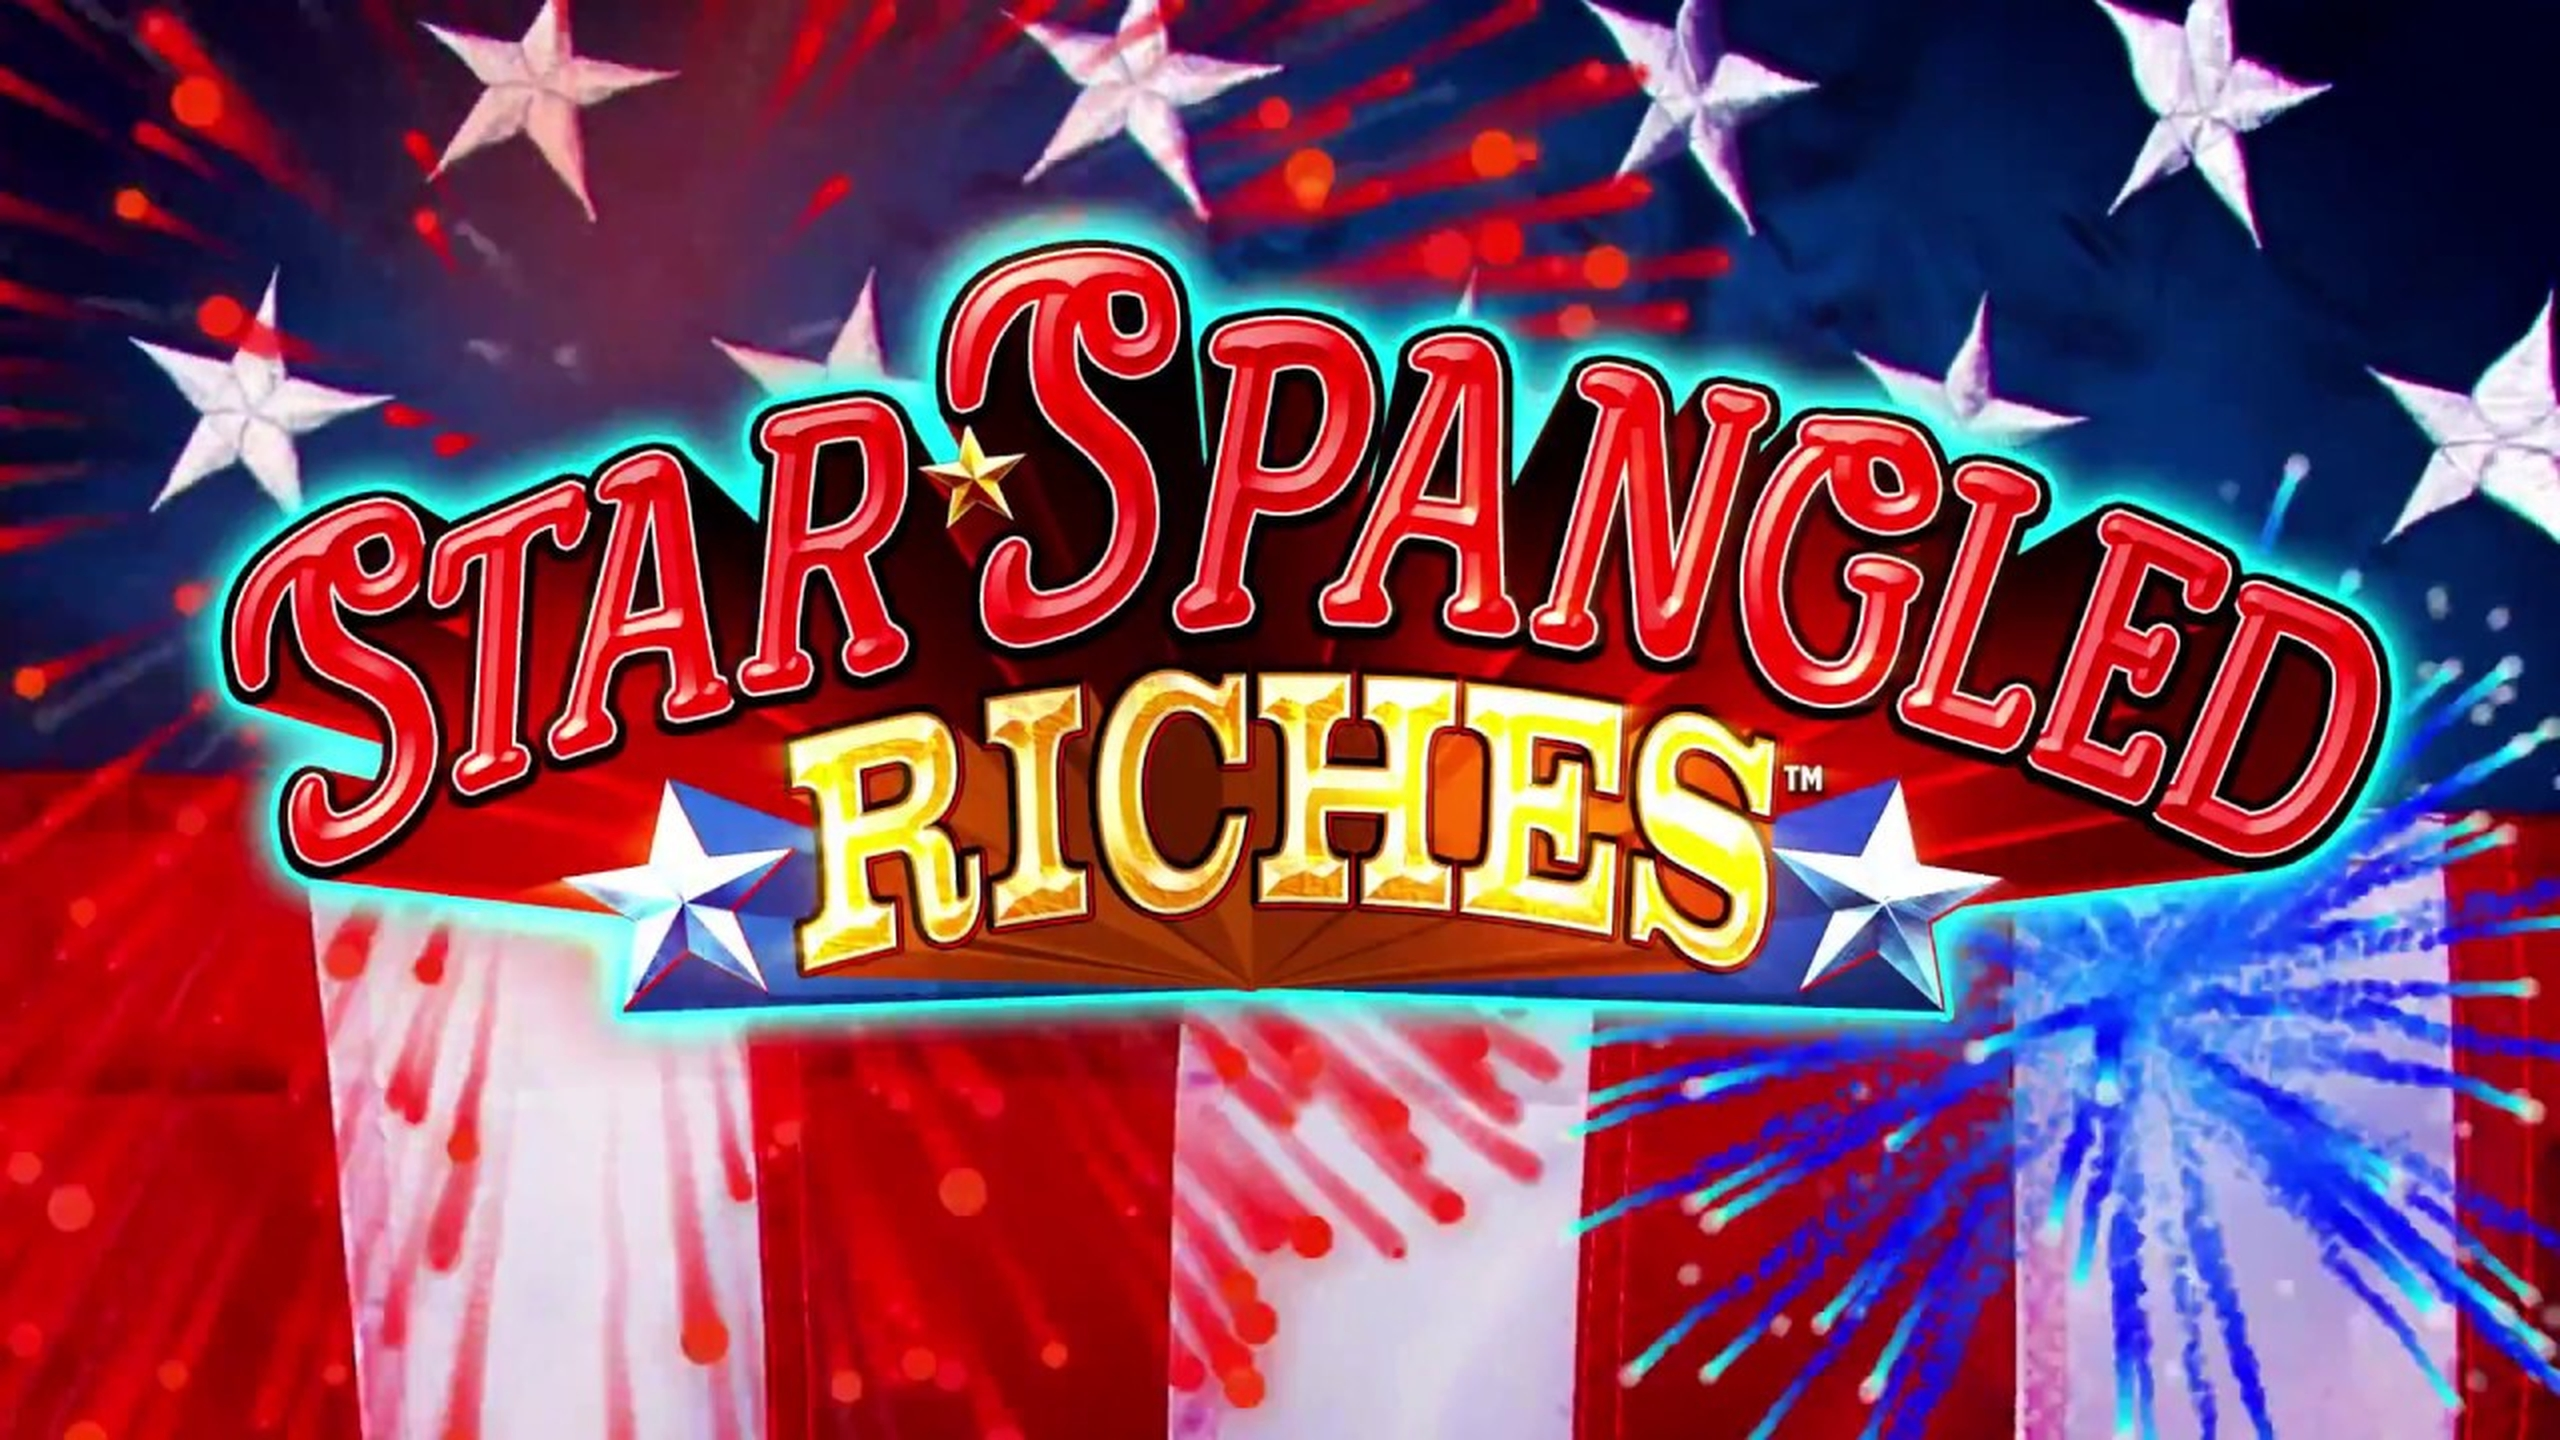 The Star Spangled Riches Online Slot Demo Game by Incredible Technologies